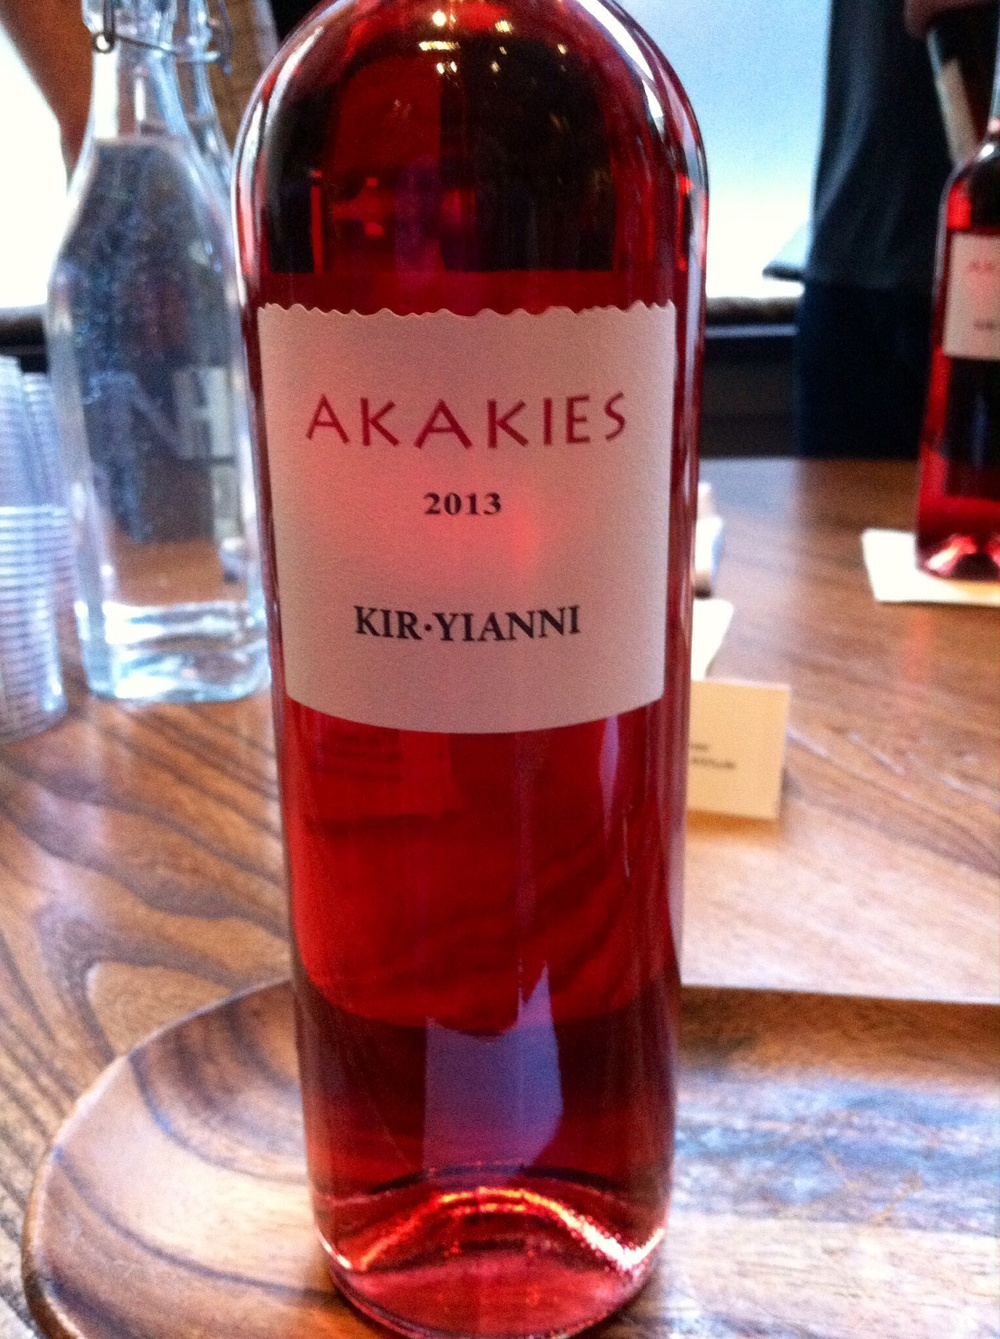 Akakies, Kir-Yianni, Greece, 2013. Photo by Shana Sokol, Shana Speaks Wine.